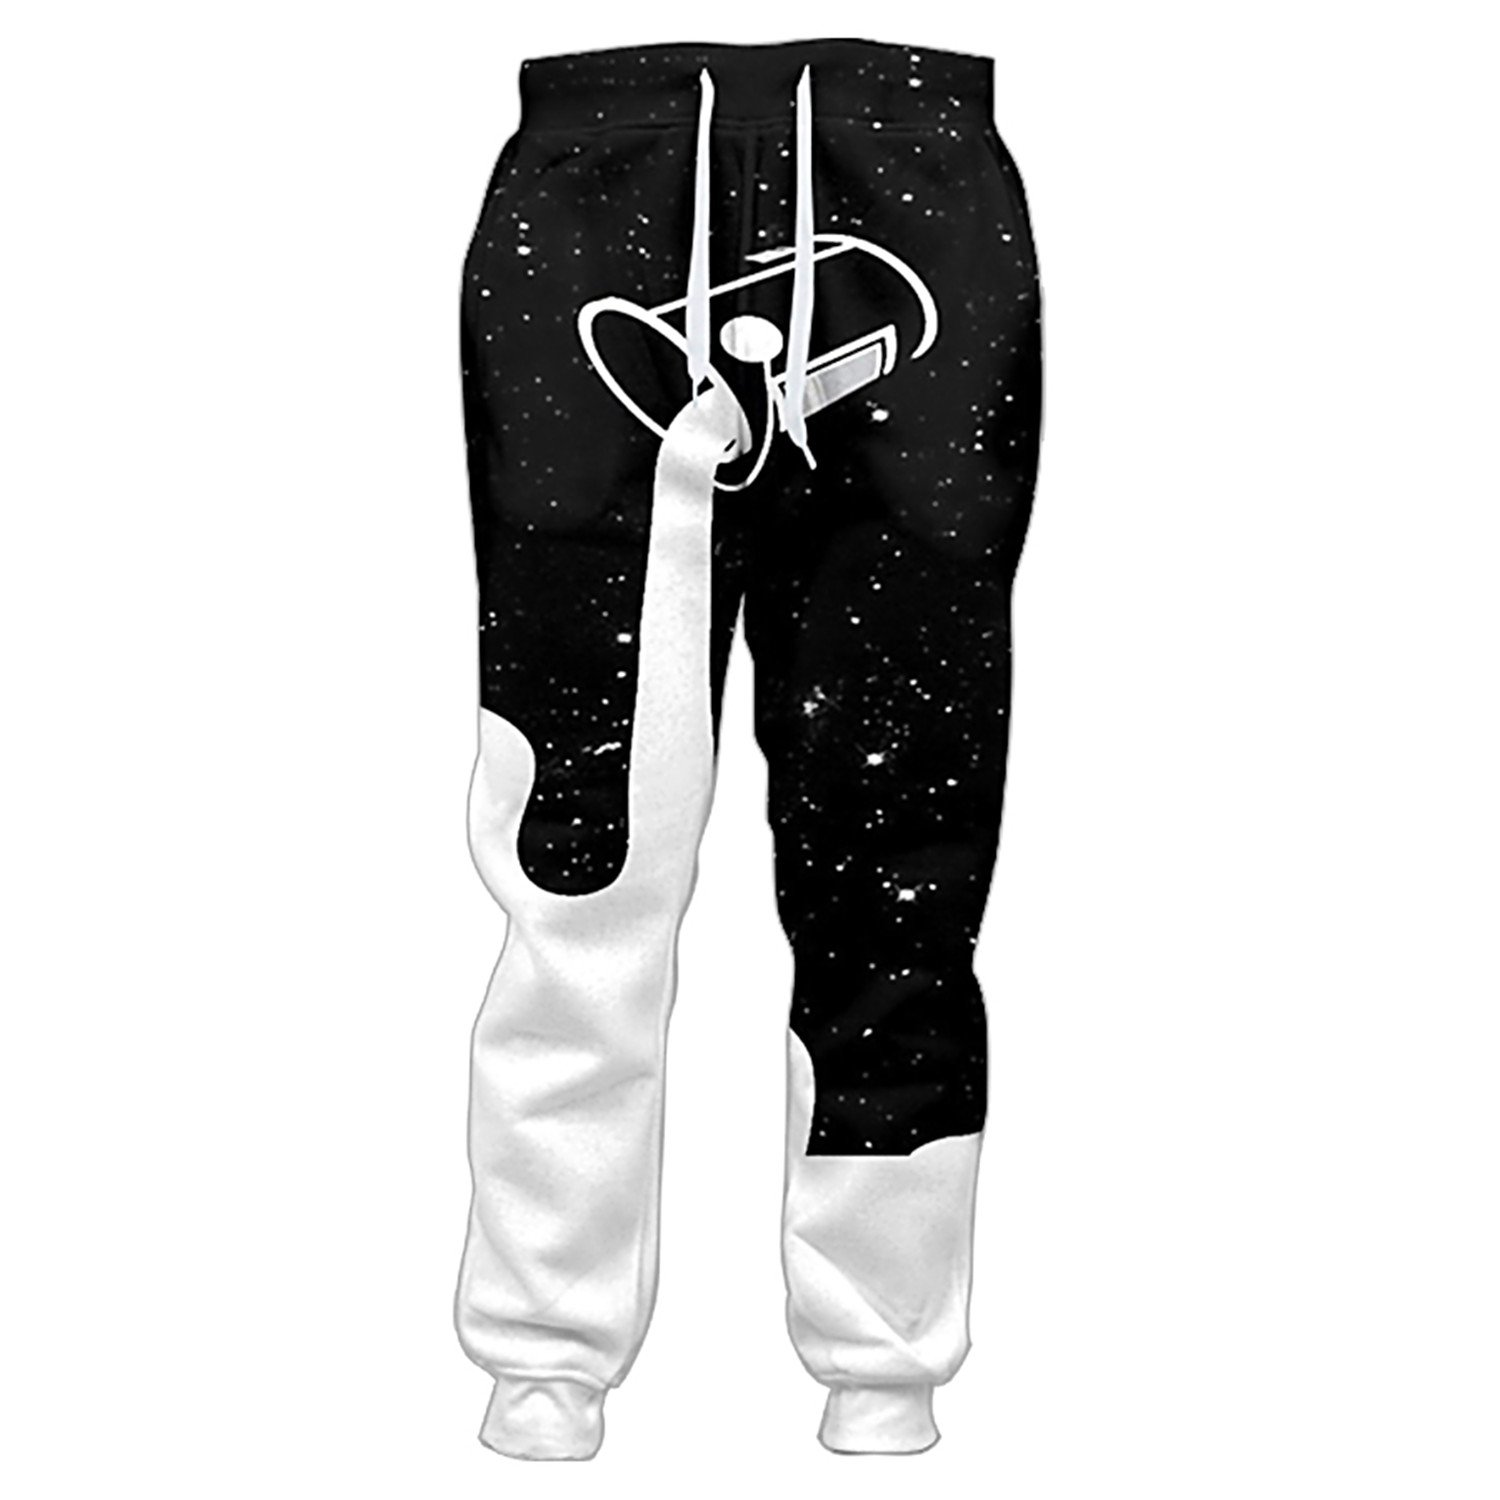 Catwomanfun Pants Men Pouring Into The Starry Night Sky To Fill Up The Galaxy Glass Of Milk 3d Print Sweatpants Casual Trousers Milk Bucket Pants XXXL at ...